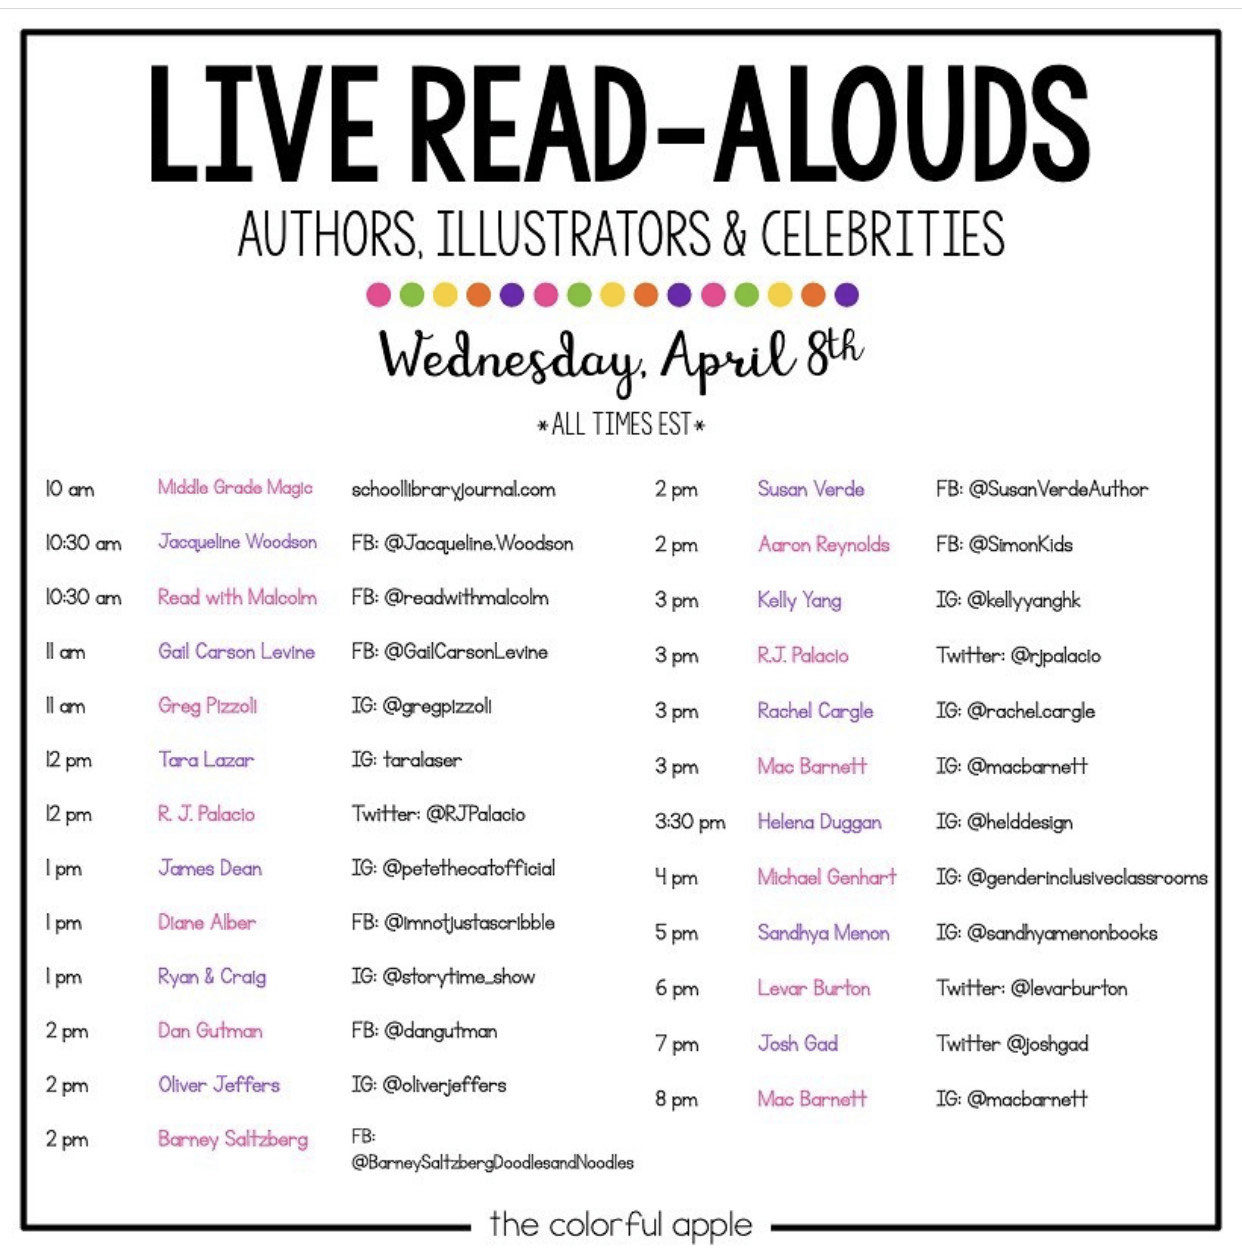 Live Read-Alouds